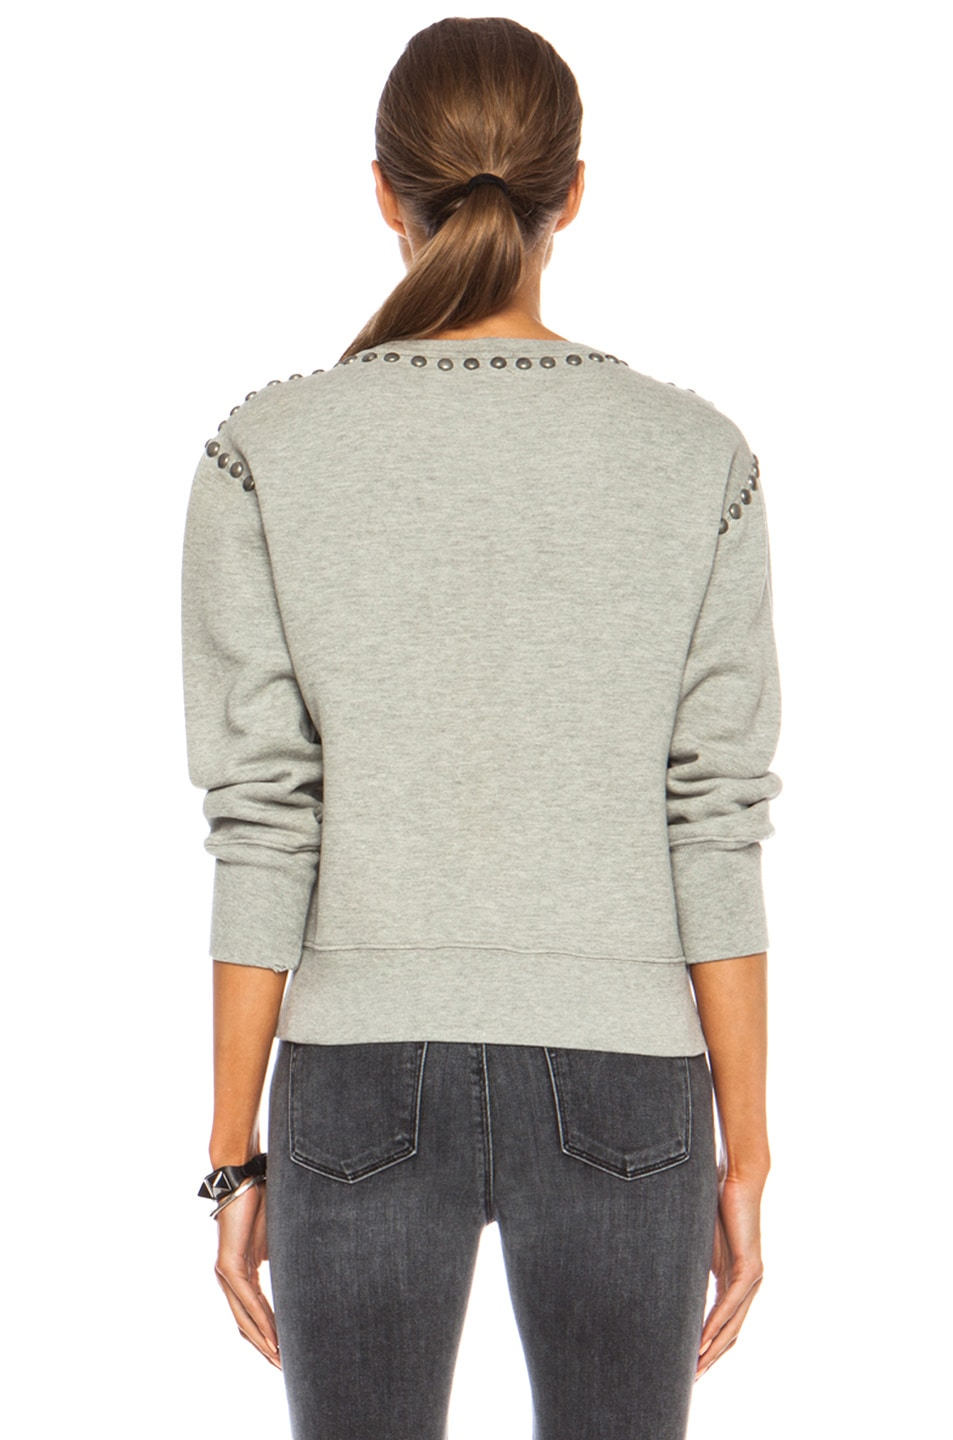 Image 4 of Citizens of Humanity Premium Vintage Camryn Sweatshirt in Studded Heather